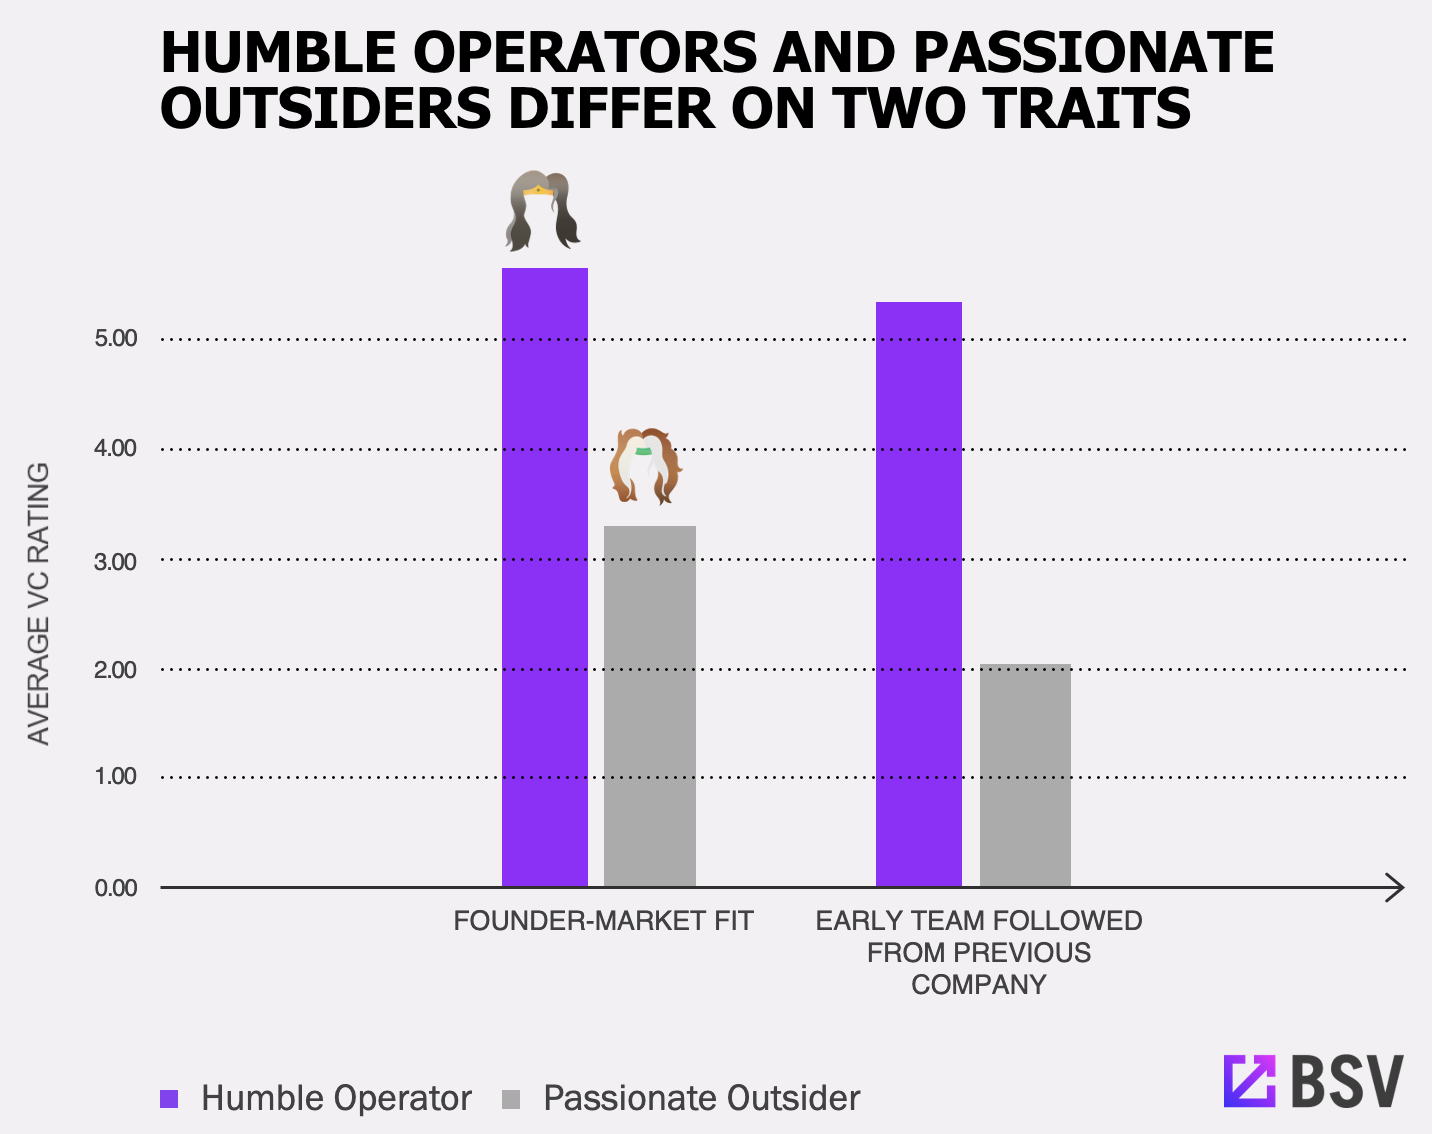 Humble Operators And Passionate Outsiders Differ On Two Traits